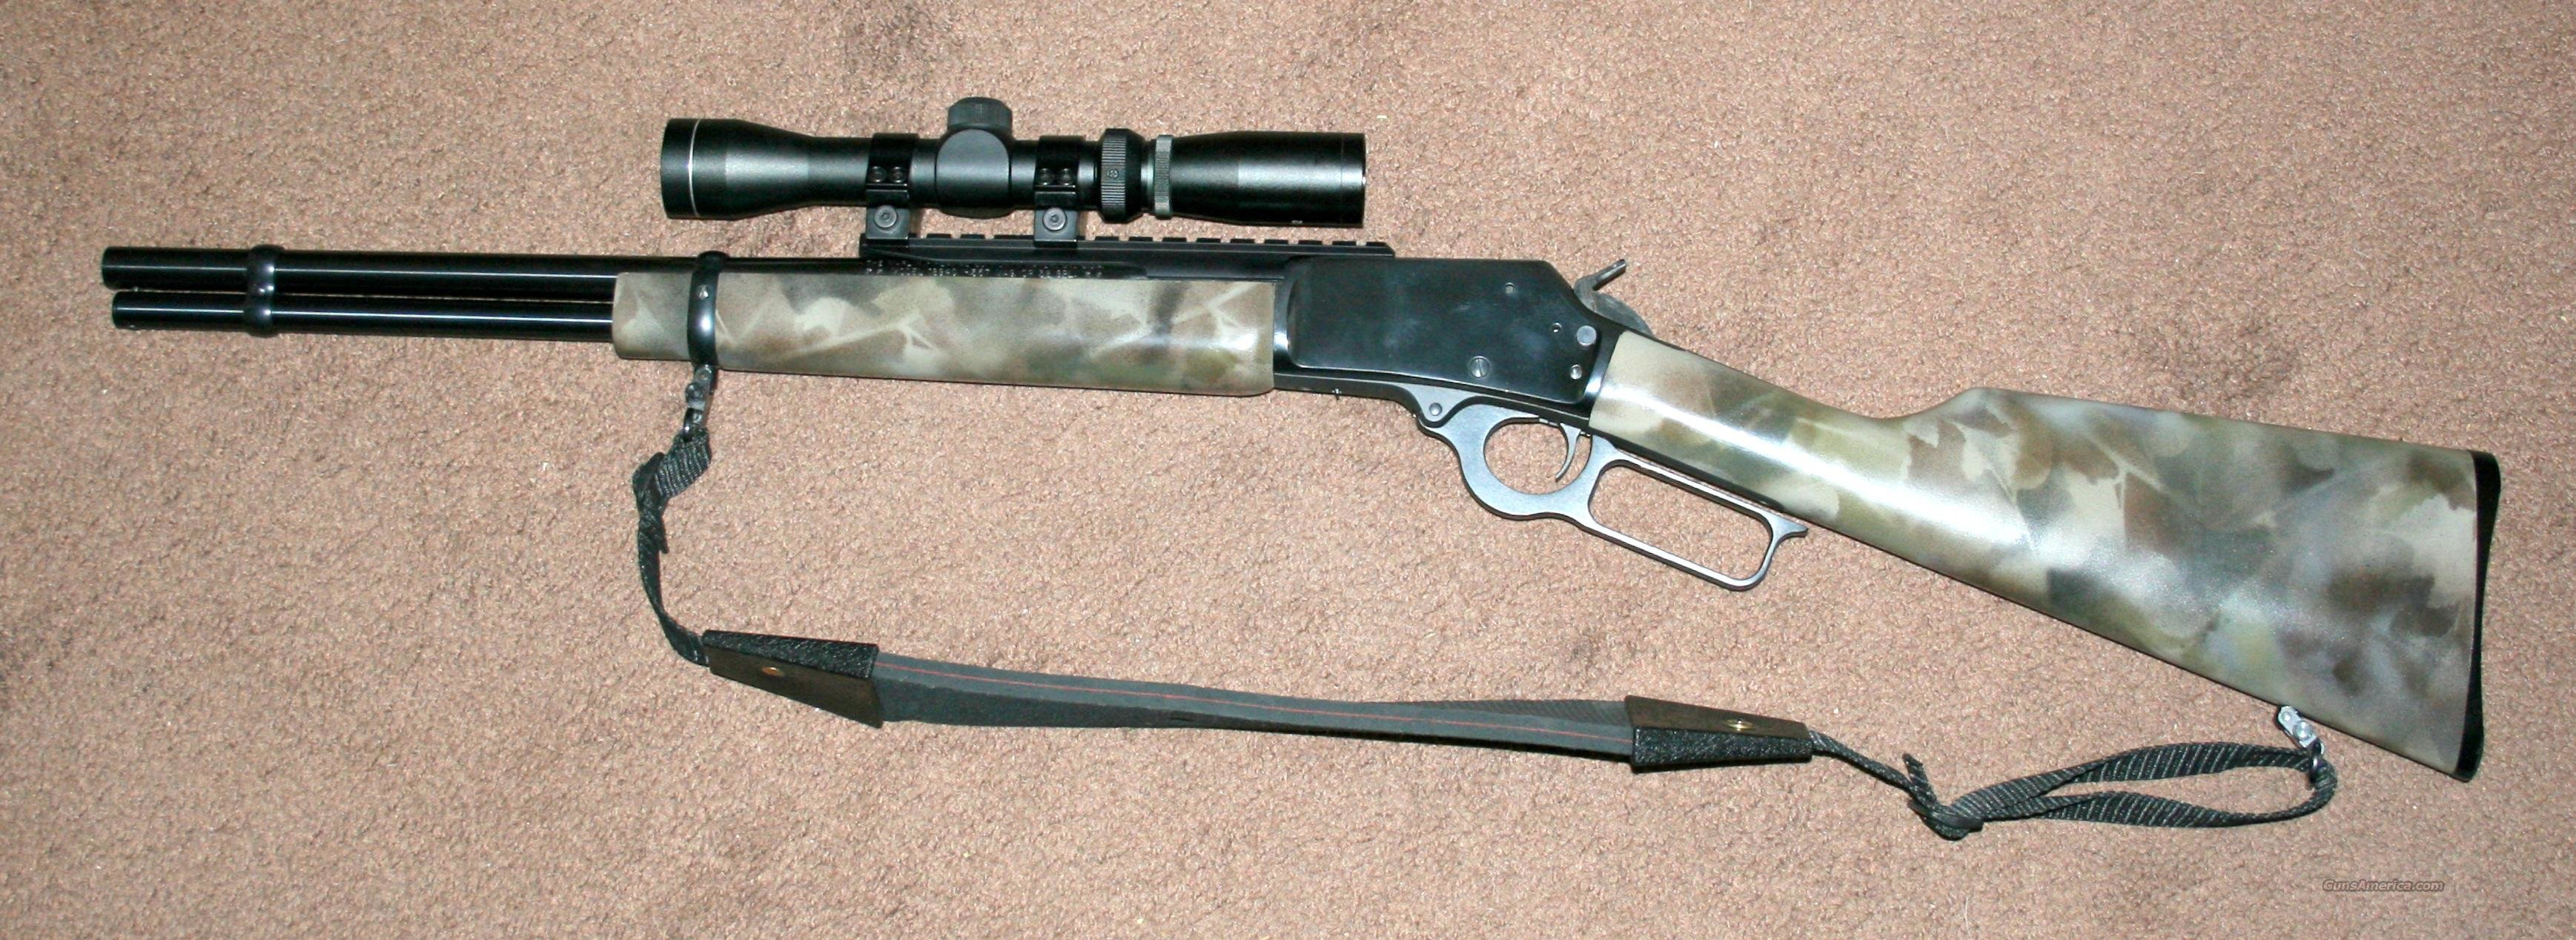 marlin .357/38 scout lever action  Guns > Rifles > Marlin Rifles > Modern > Lever Action